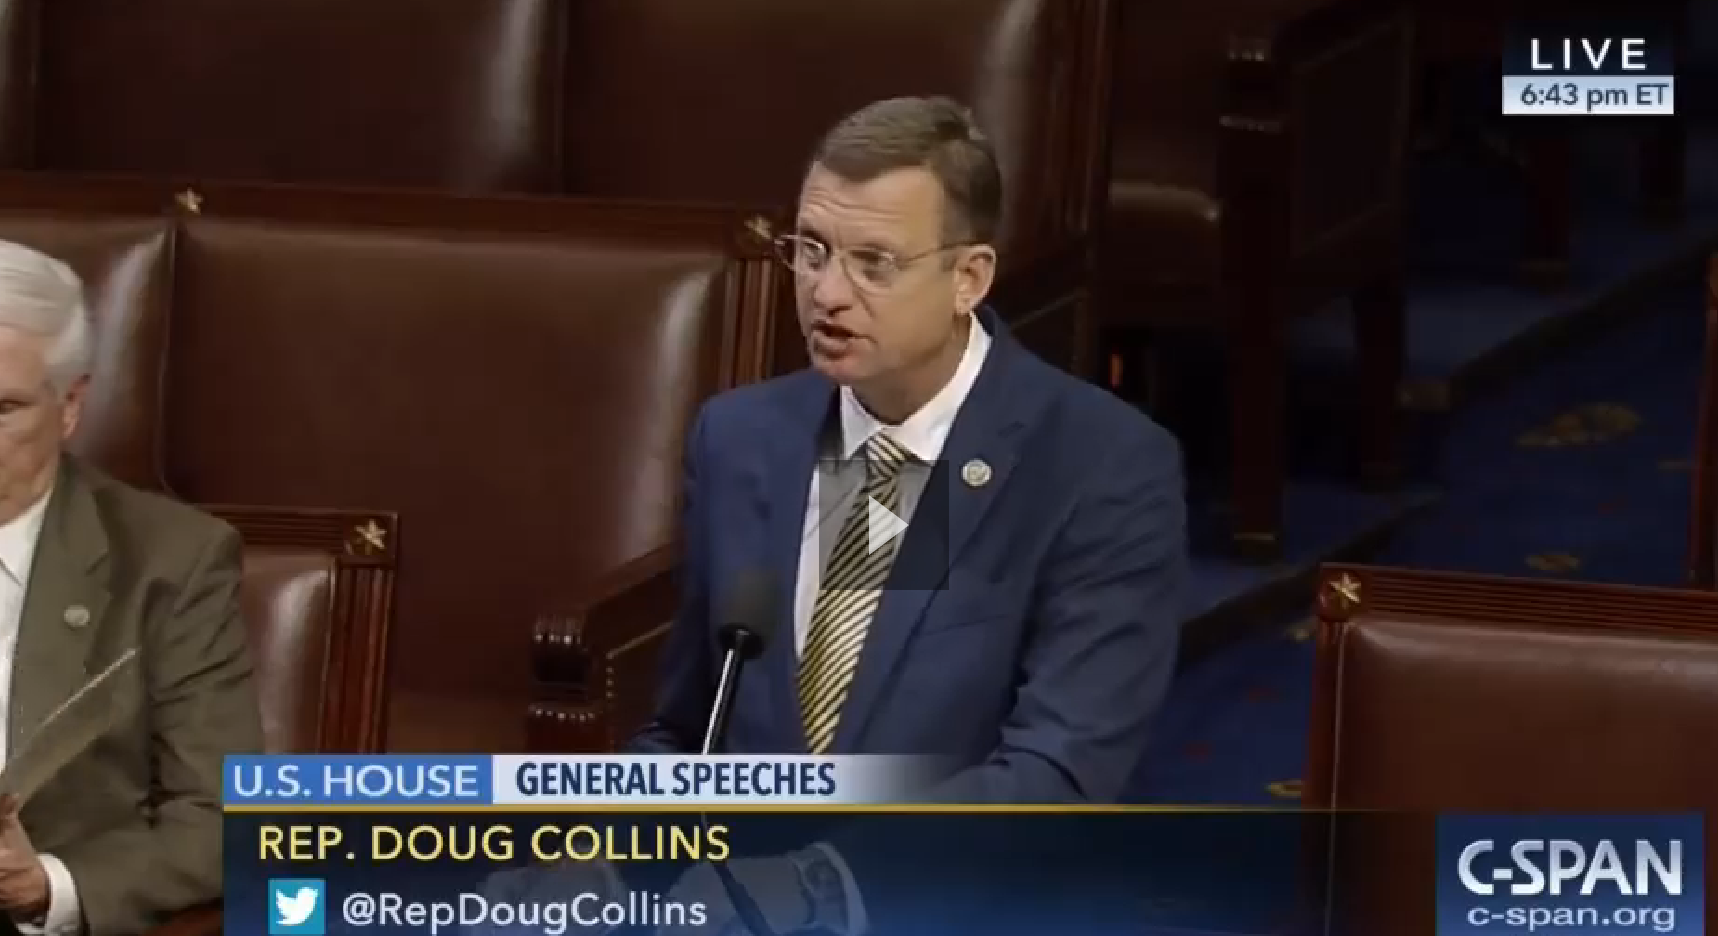 rep collins leads anti pbm rant on house floor introduces doug collins house floor speech 1 2017 c span org